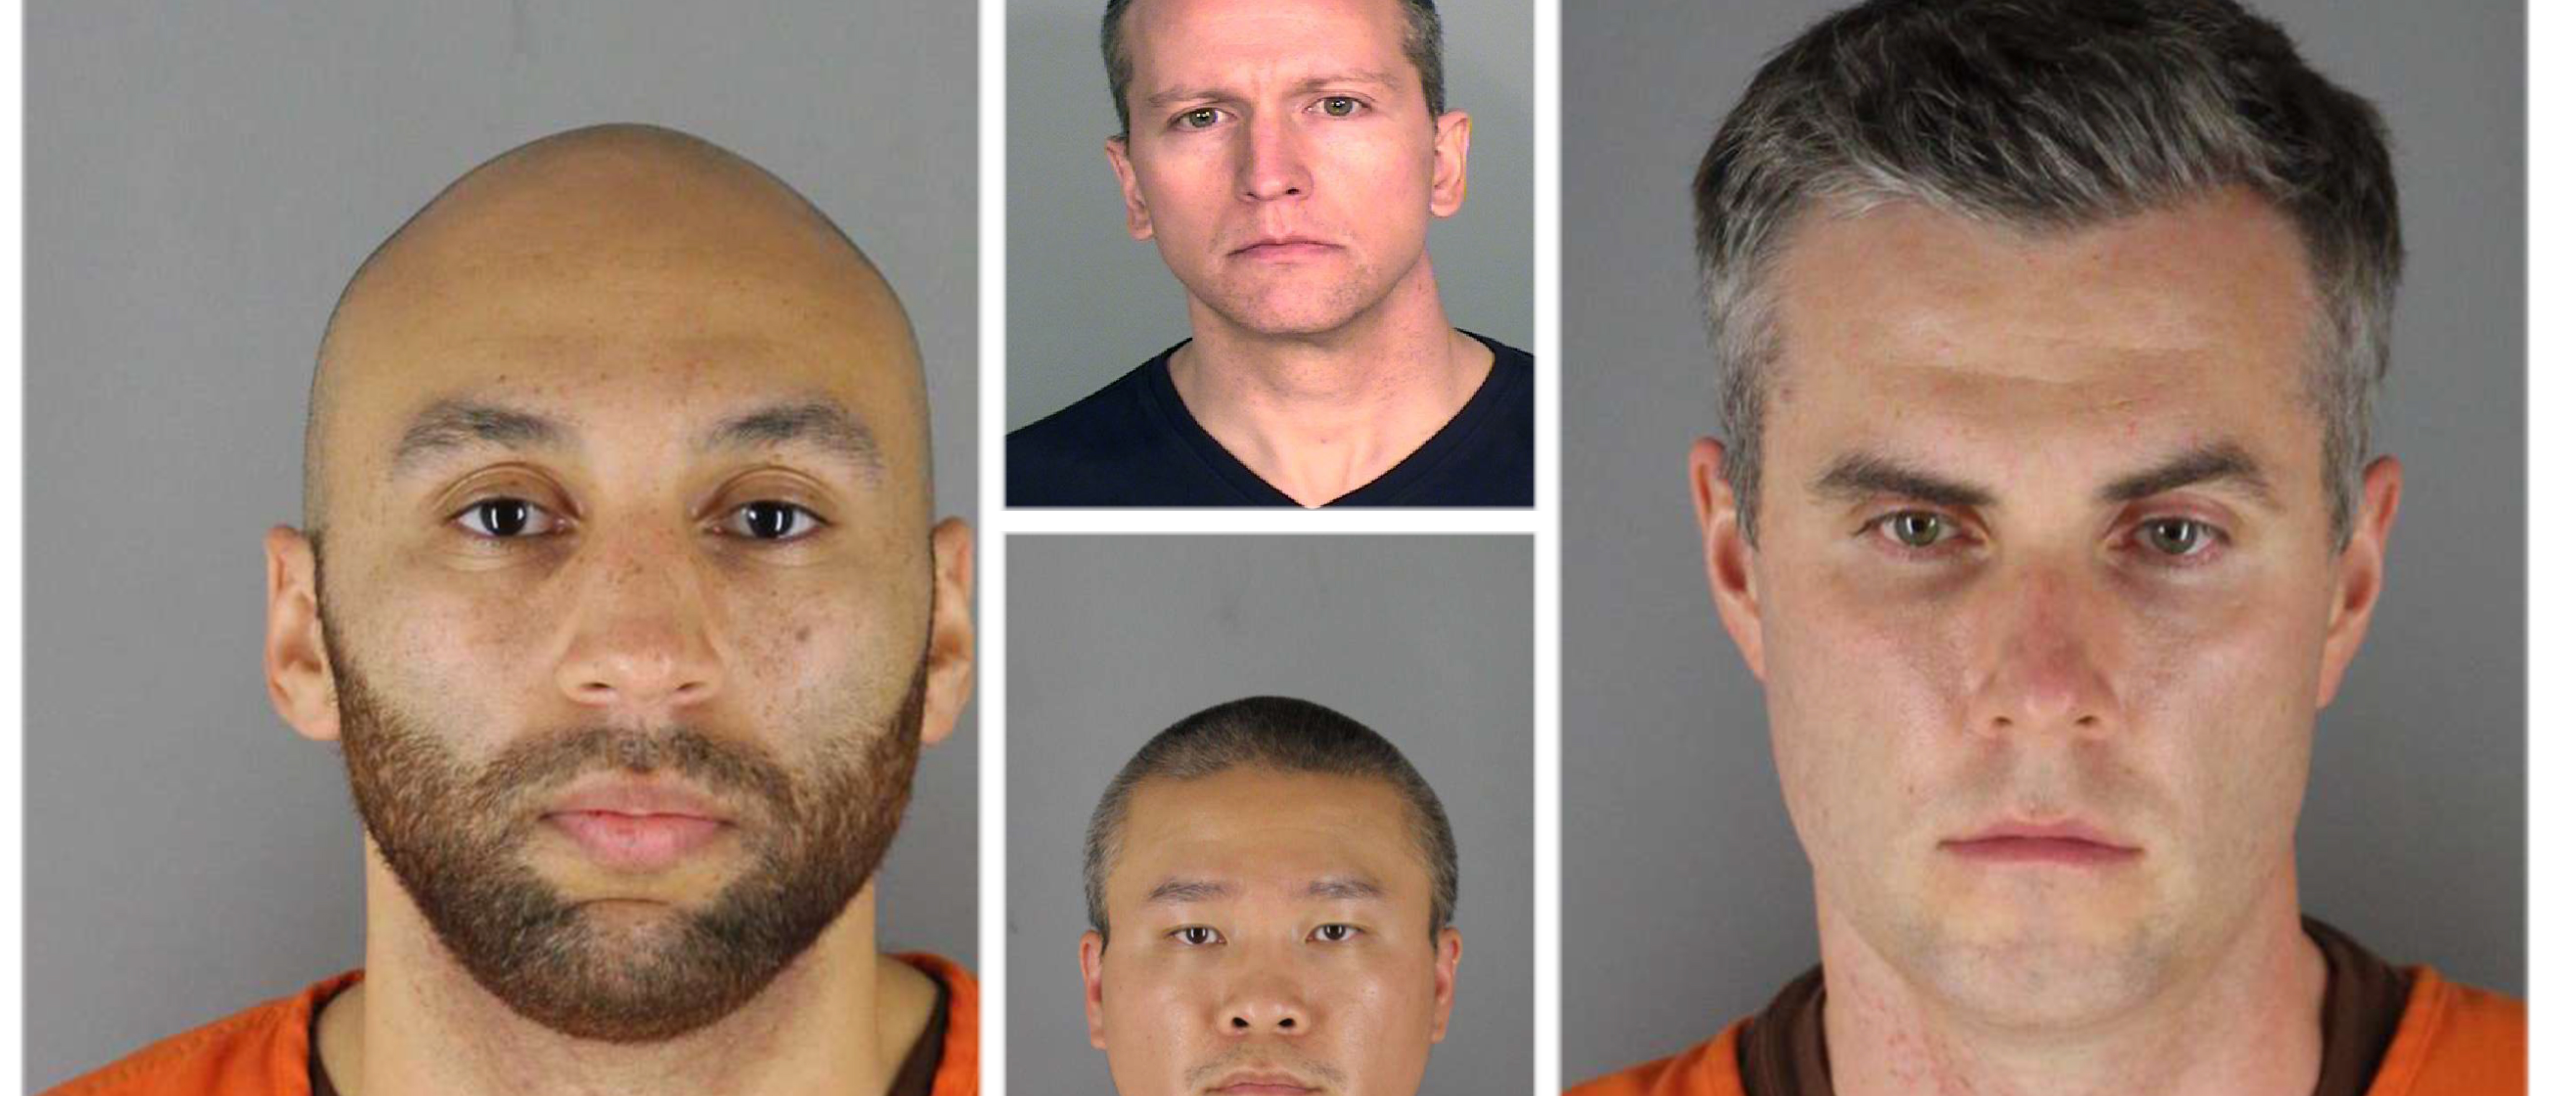 Fired Minneapolis police officers charged in the death of George Floyd. J. Alexander Kueng (left), Tou Thao (bottom middle), Derek Chauvin (top middle), Thomas Lane (right). Credit: Hennepin County Sheriffs Office via Getty Images